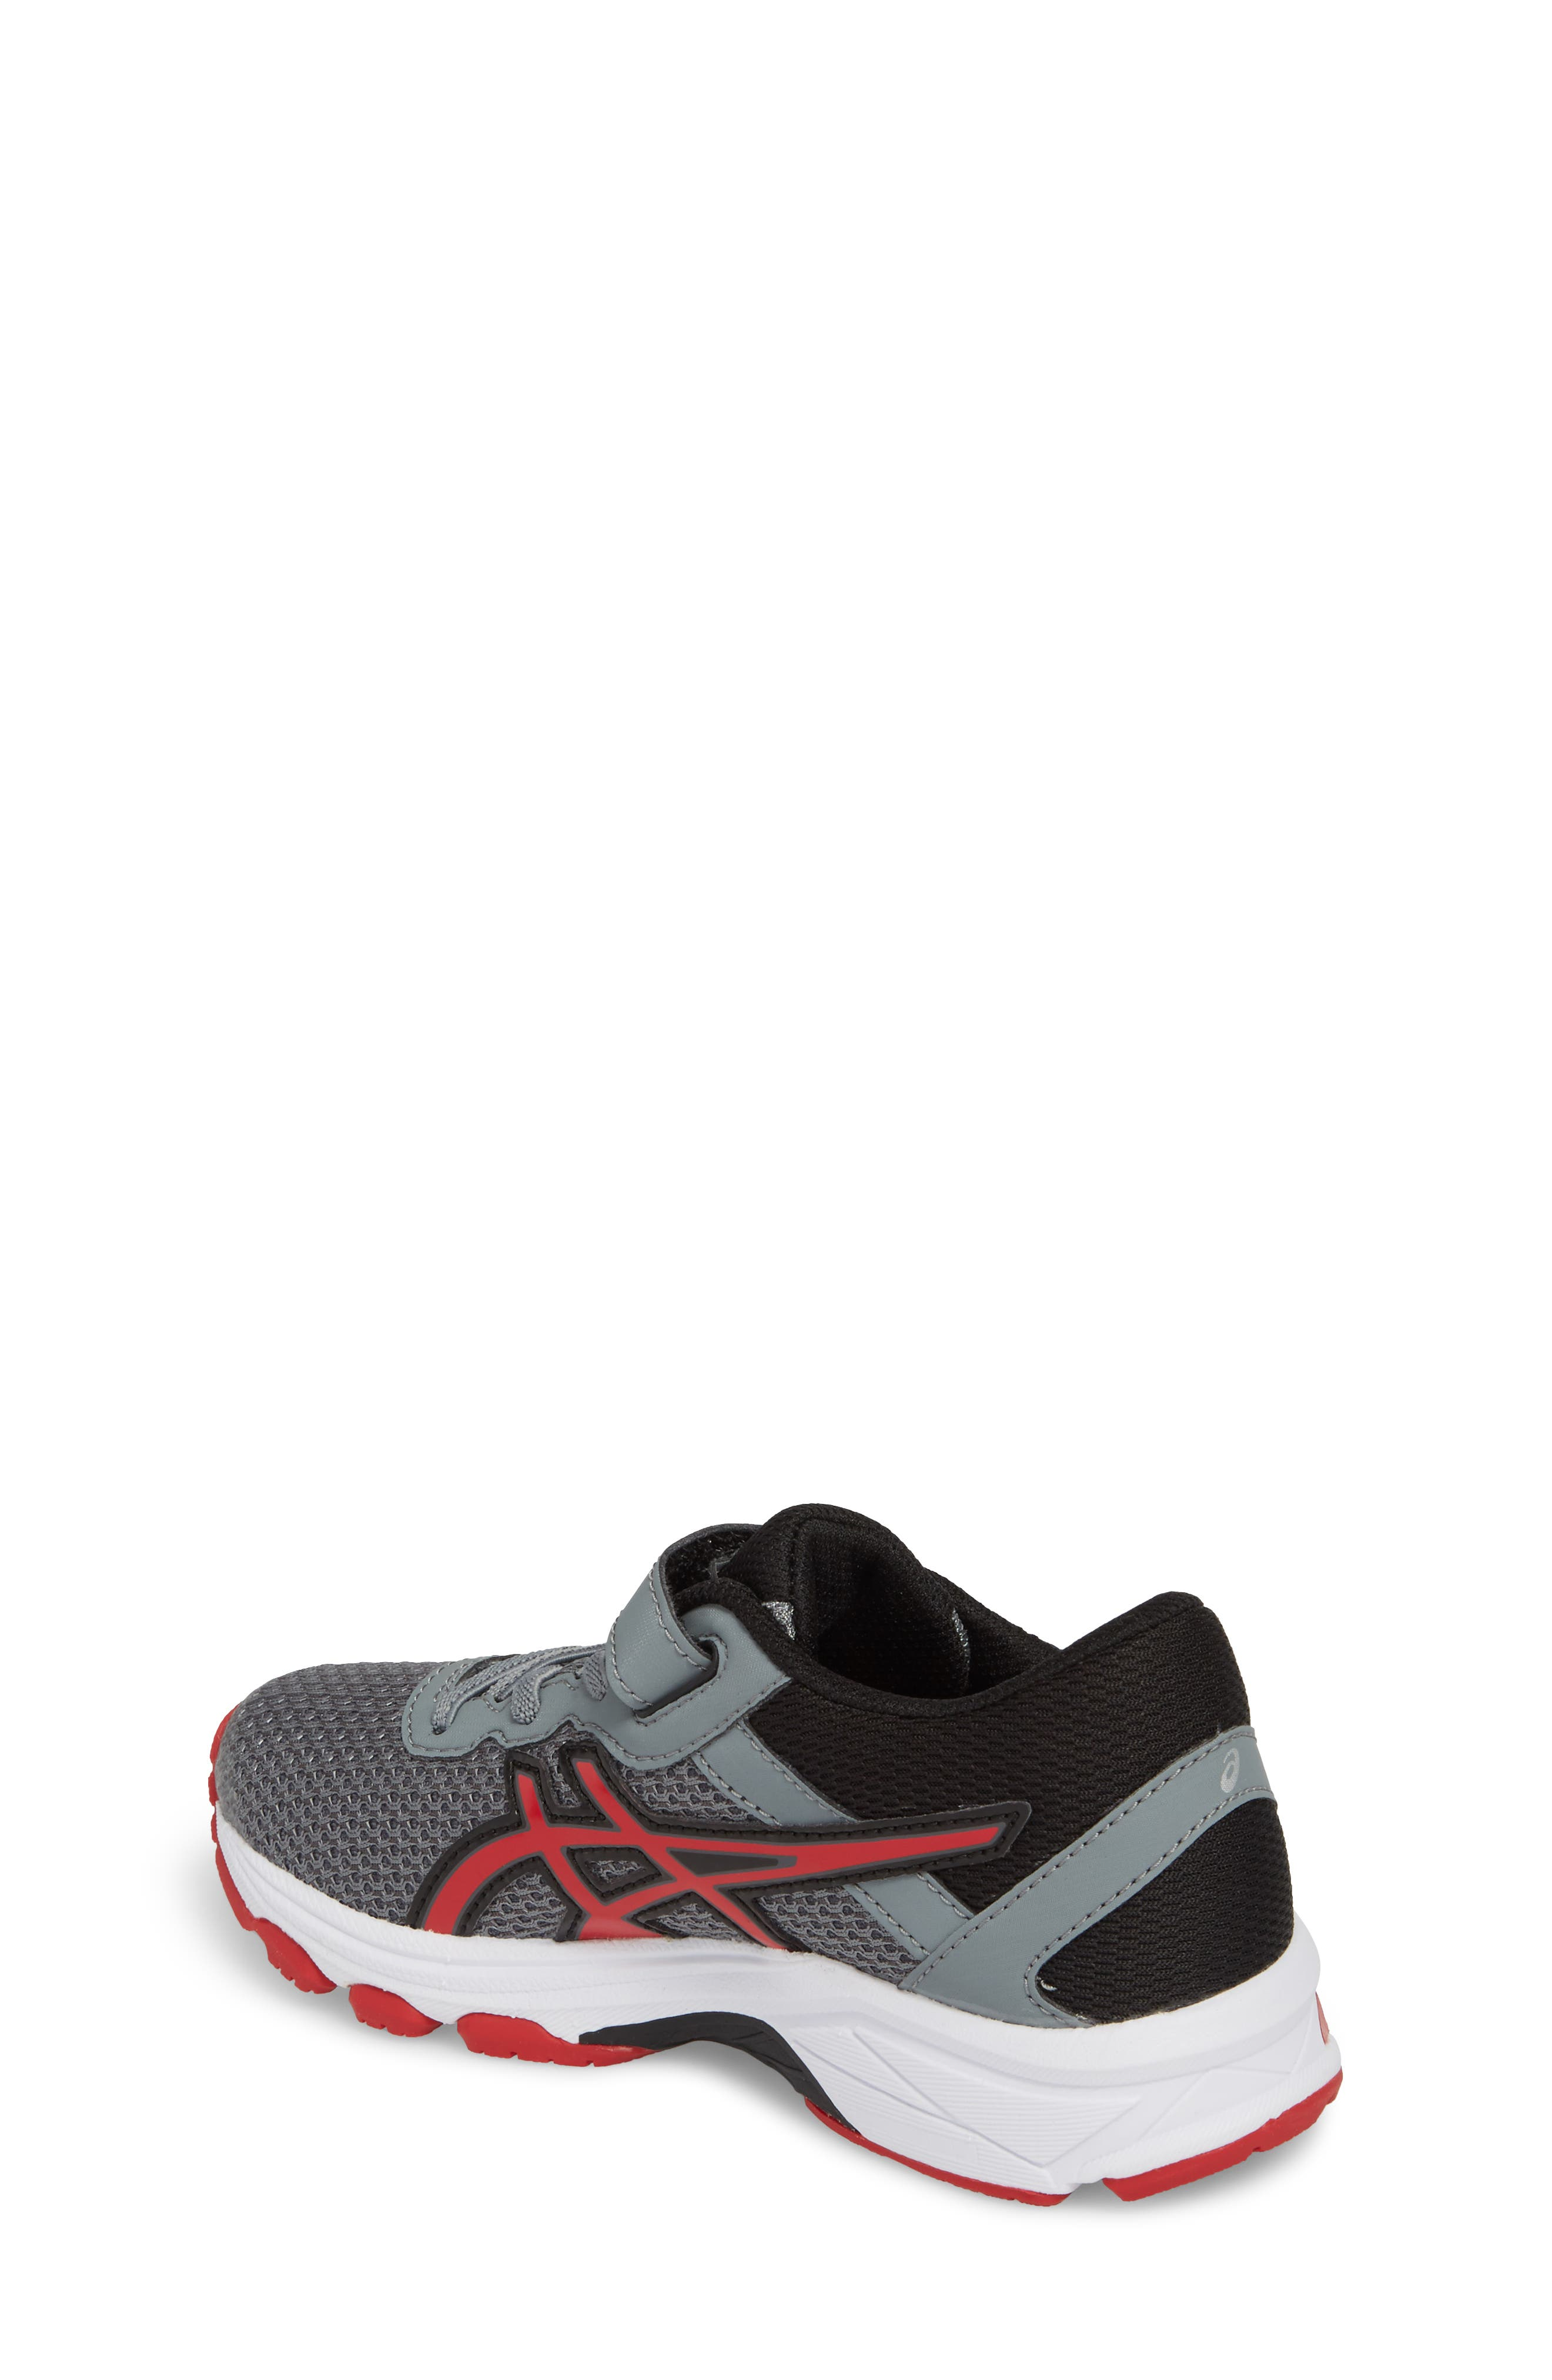 Asics GT-1000<sup>™</sup> 6 PS Sneaker,                             Alternate thumbnail 2, color,                             Stone Grey/ Classic Red/ Black